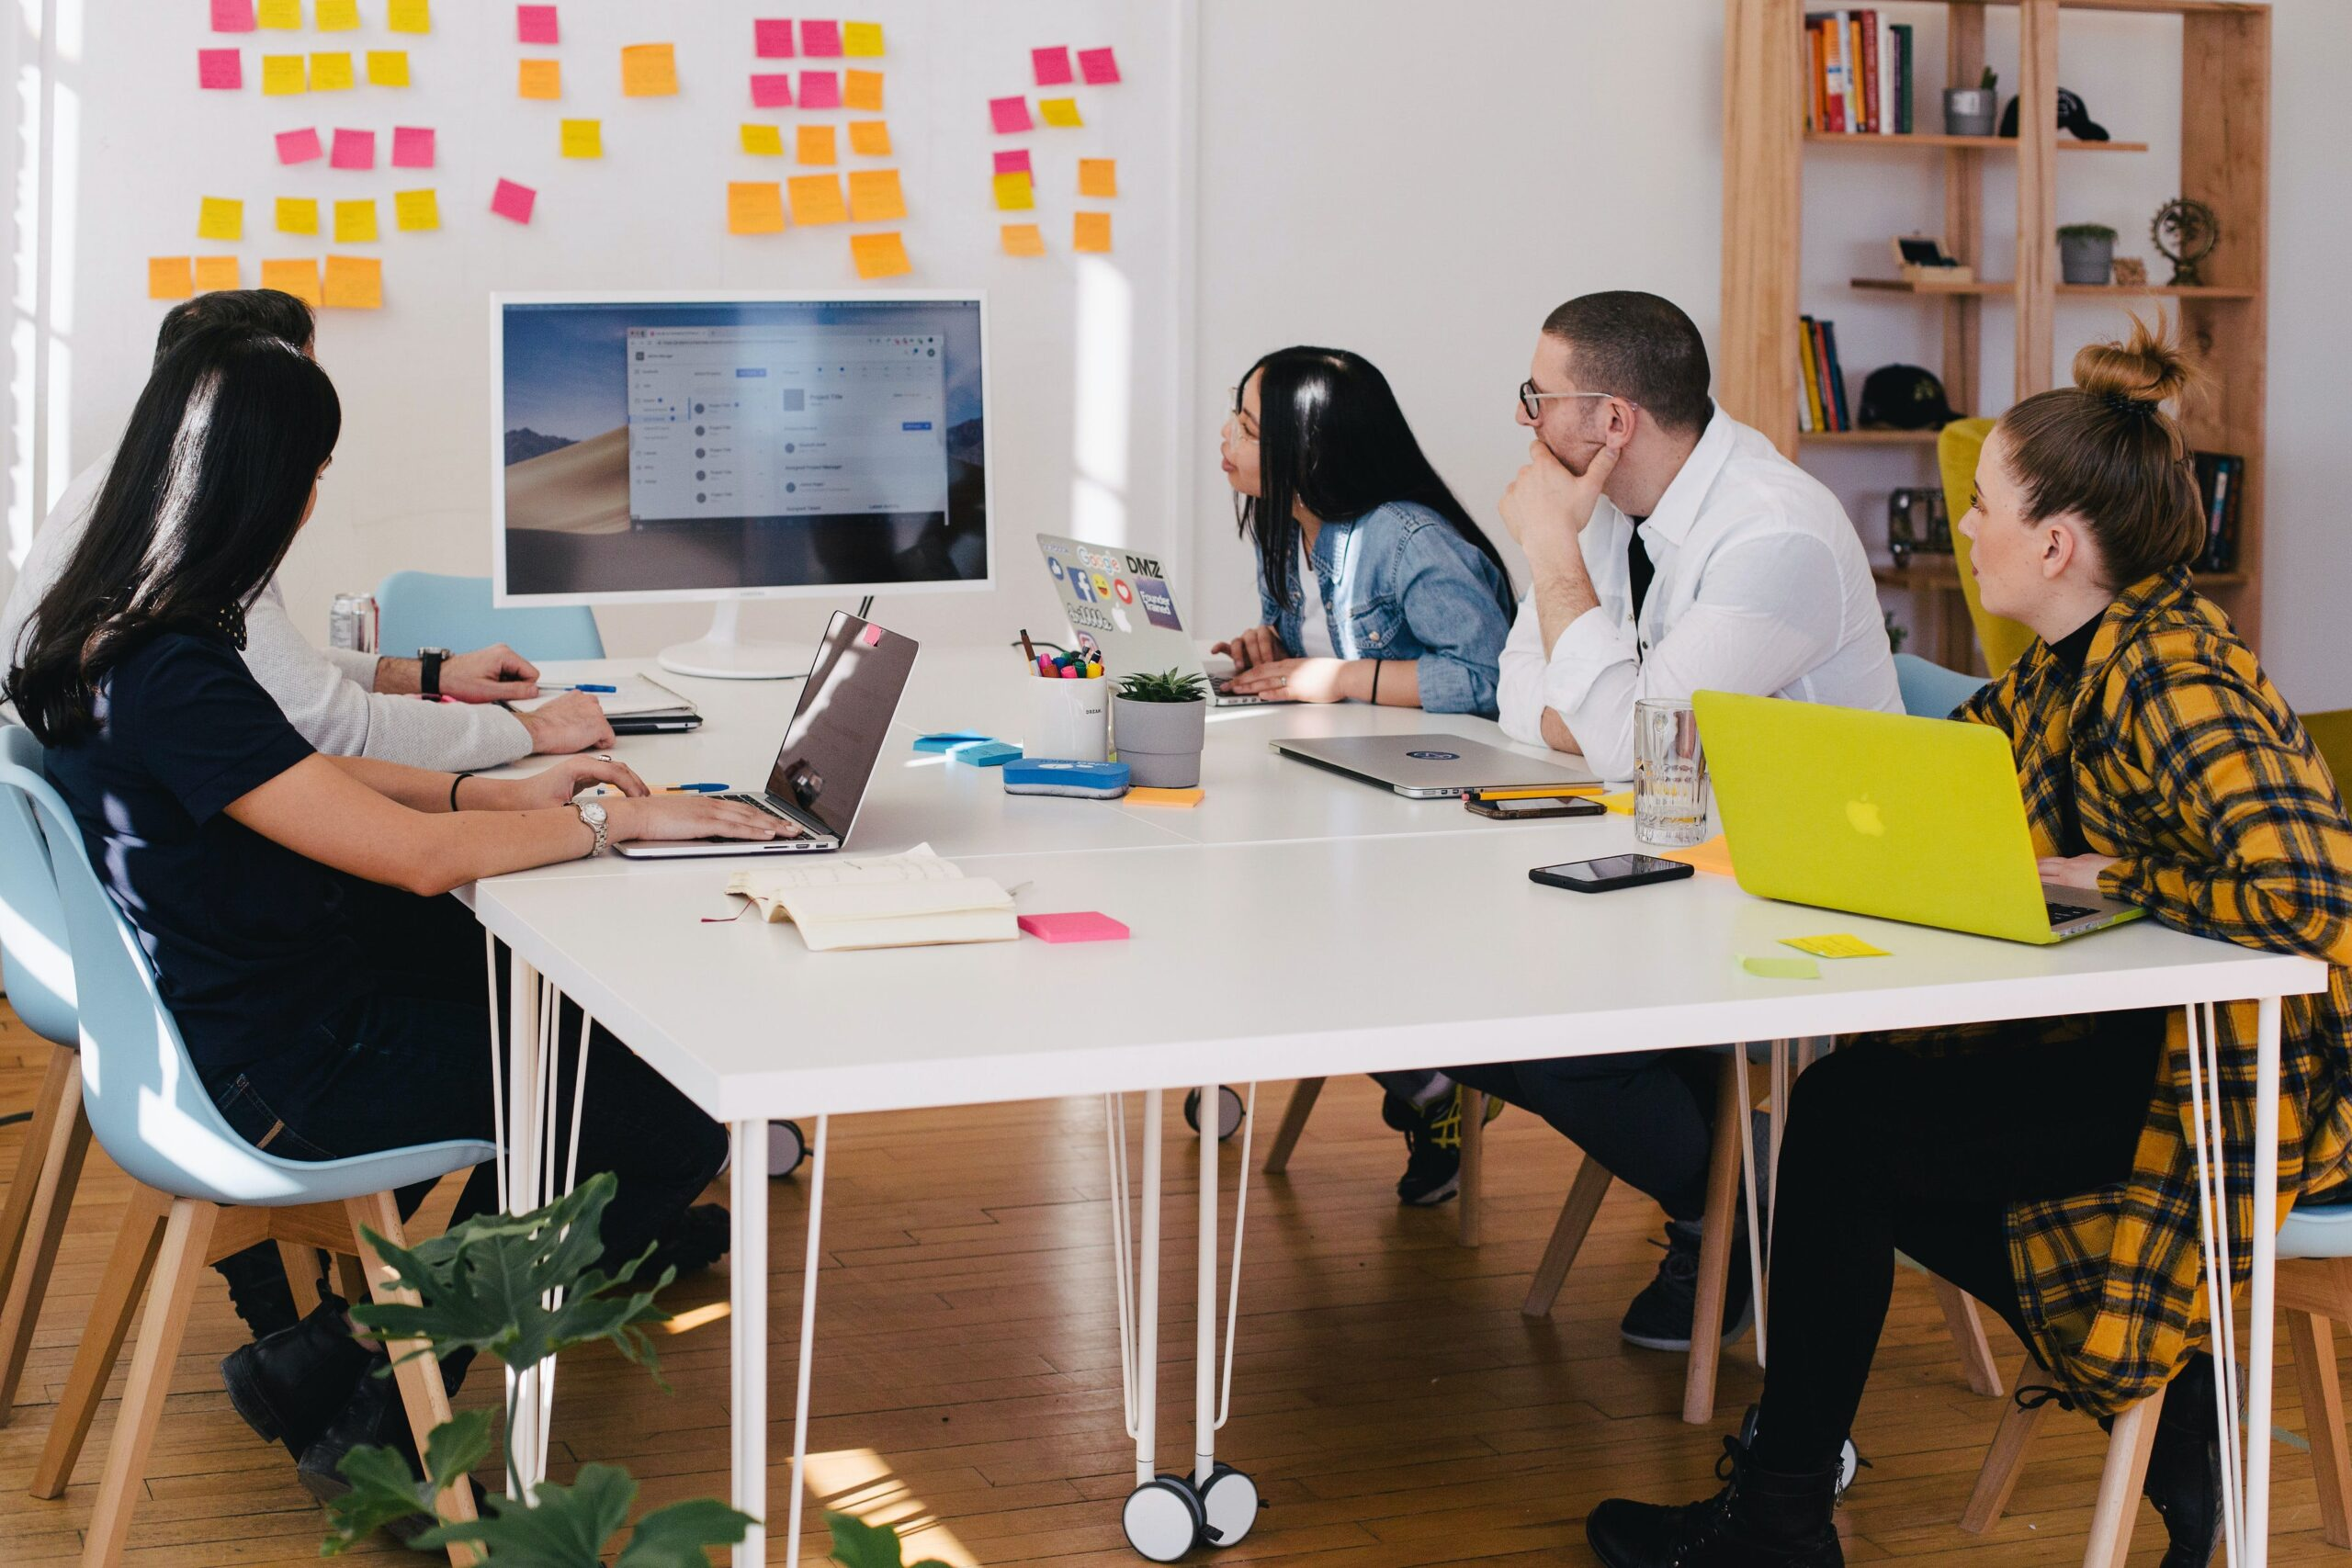 How To Start A Successful Advertising Agency Business